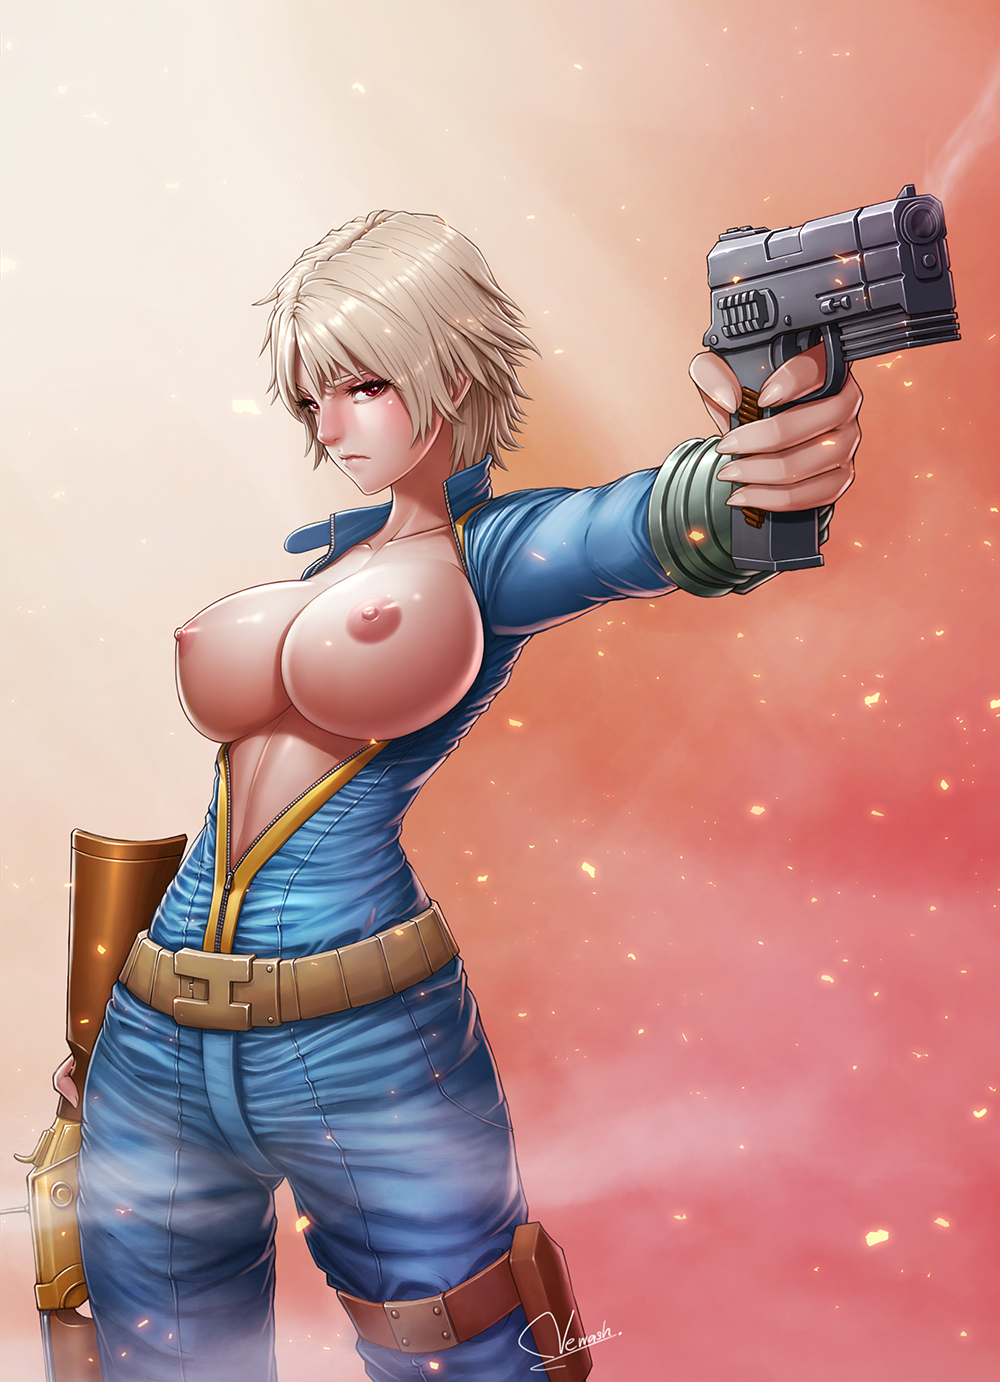 male fallout sole survivor 4 Nude beauty and the beast